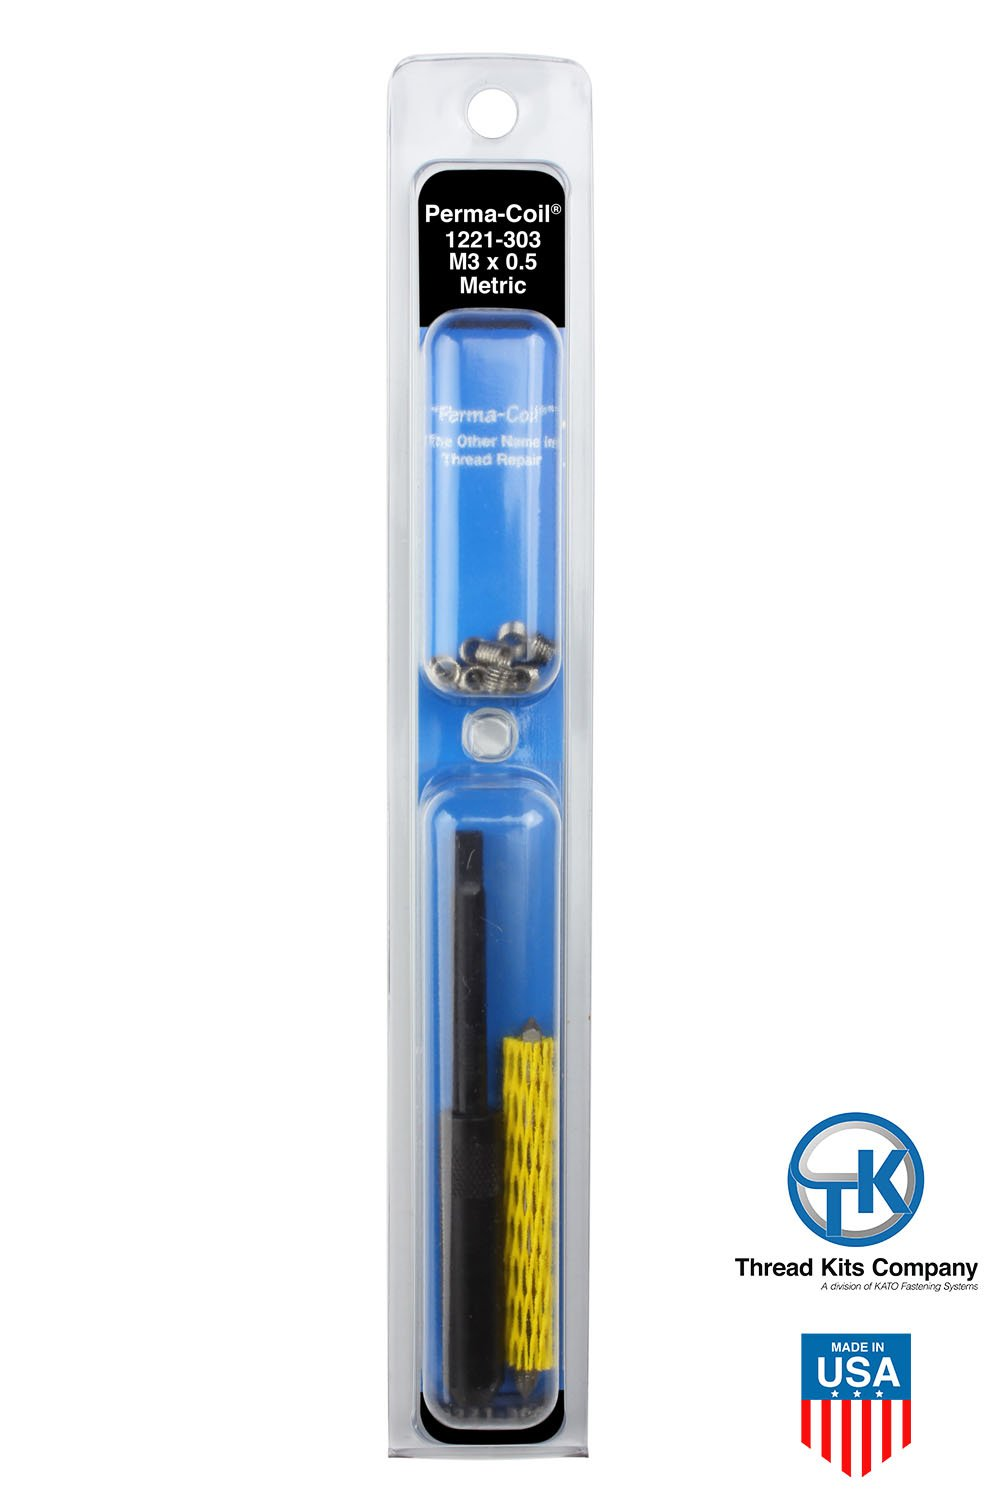 Perma-Coil 1221-303 Metric Thread Repair Kit M3X0.5 12PC Helicoil 5403-3 by Perma-Coil (Image #2)